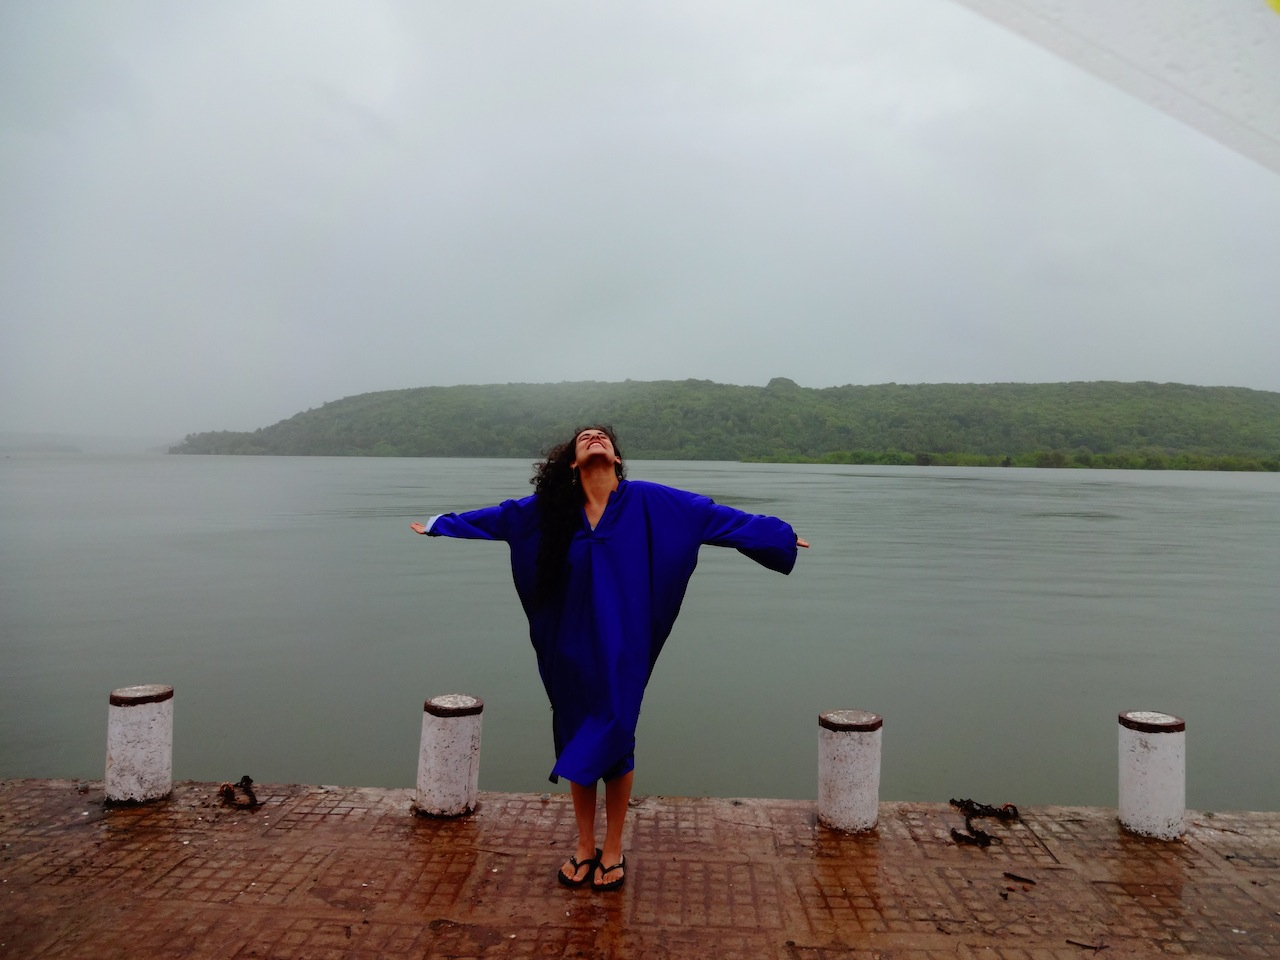 Welcoming the rains with open arms